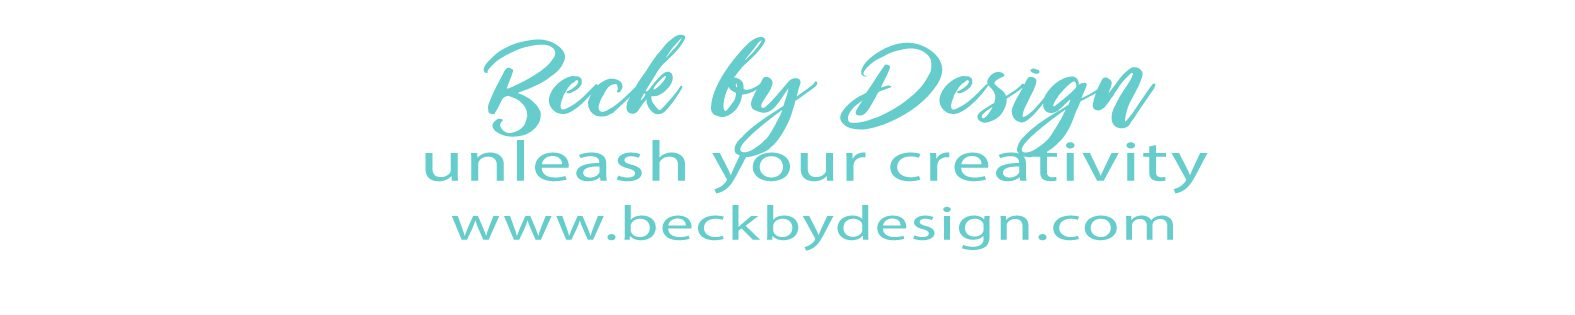 beck by design